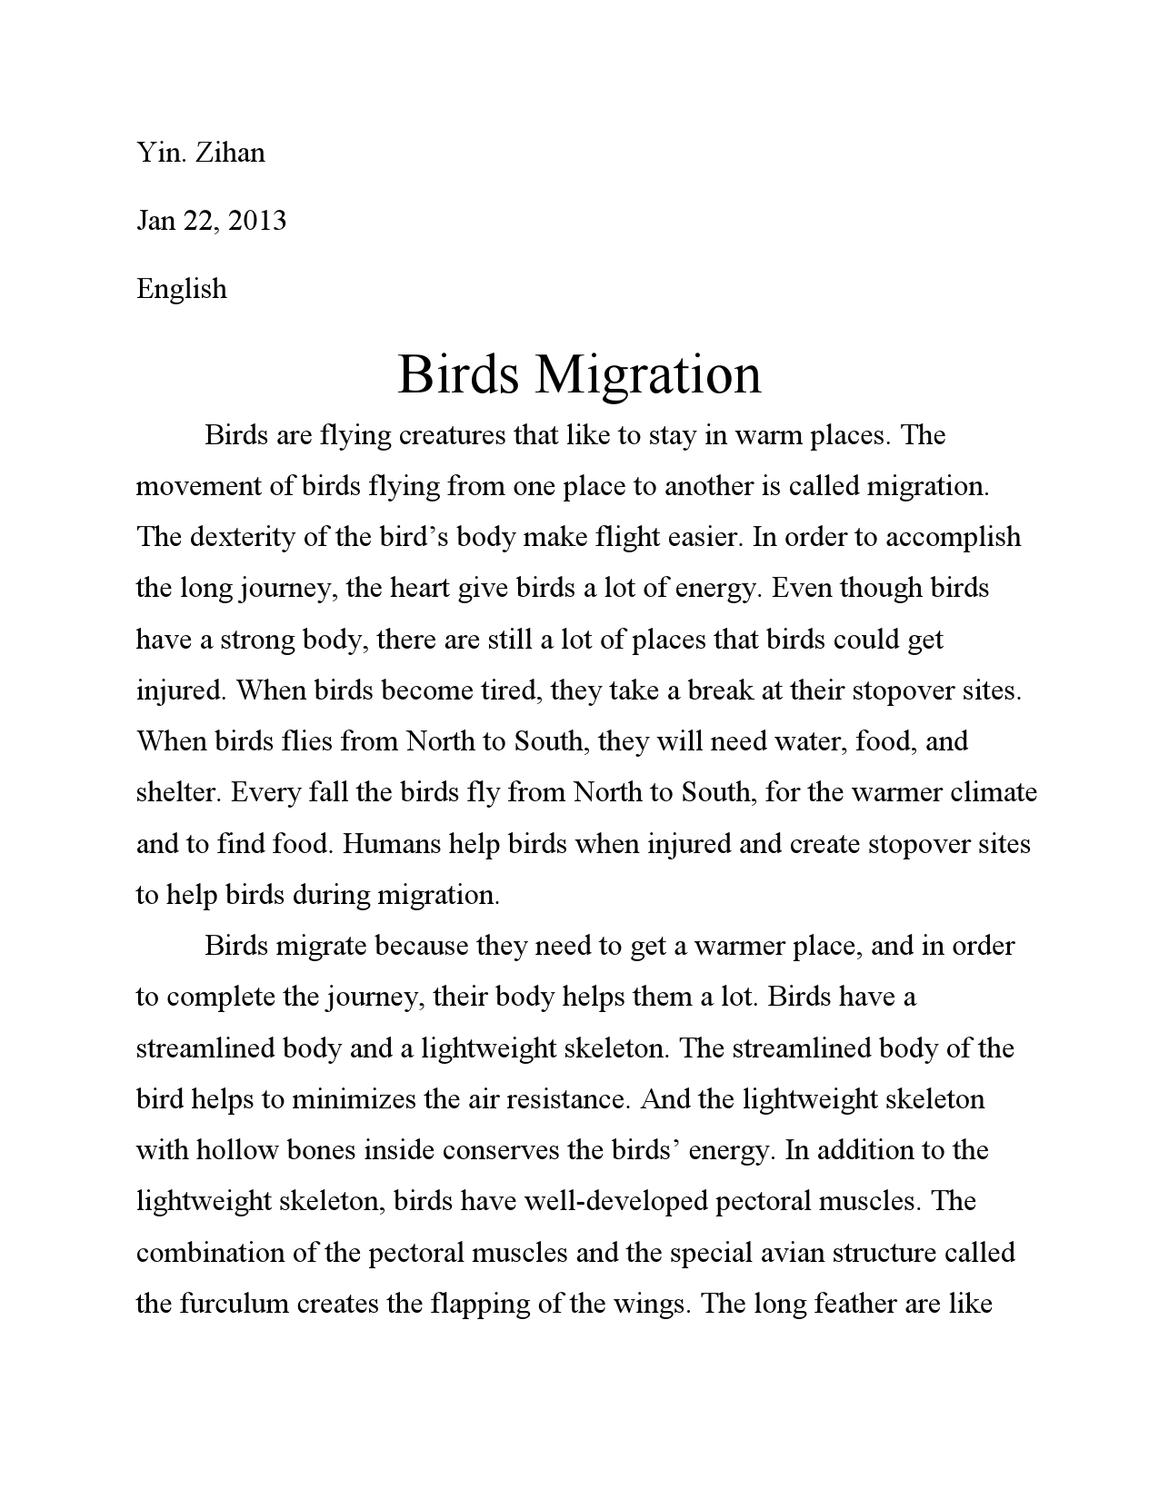 migration essay The great migration essay the great migration is a term used in the us history  to denote the period in the 20th century, from 1916 to 1970, when african.